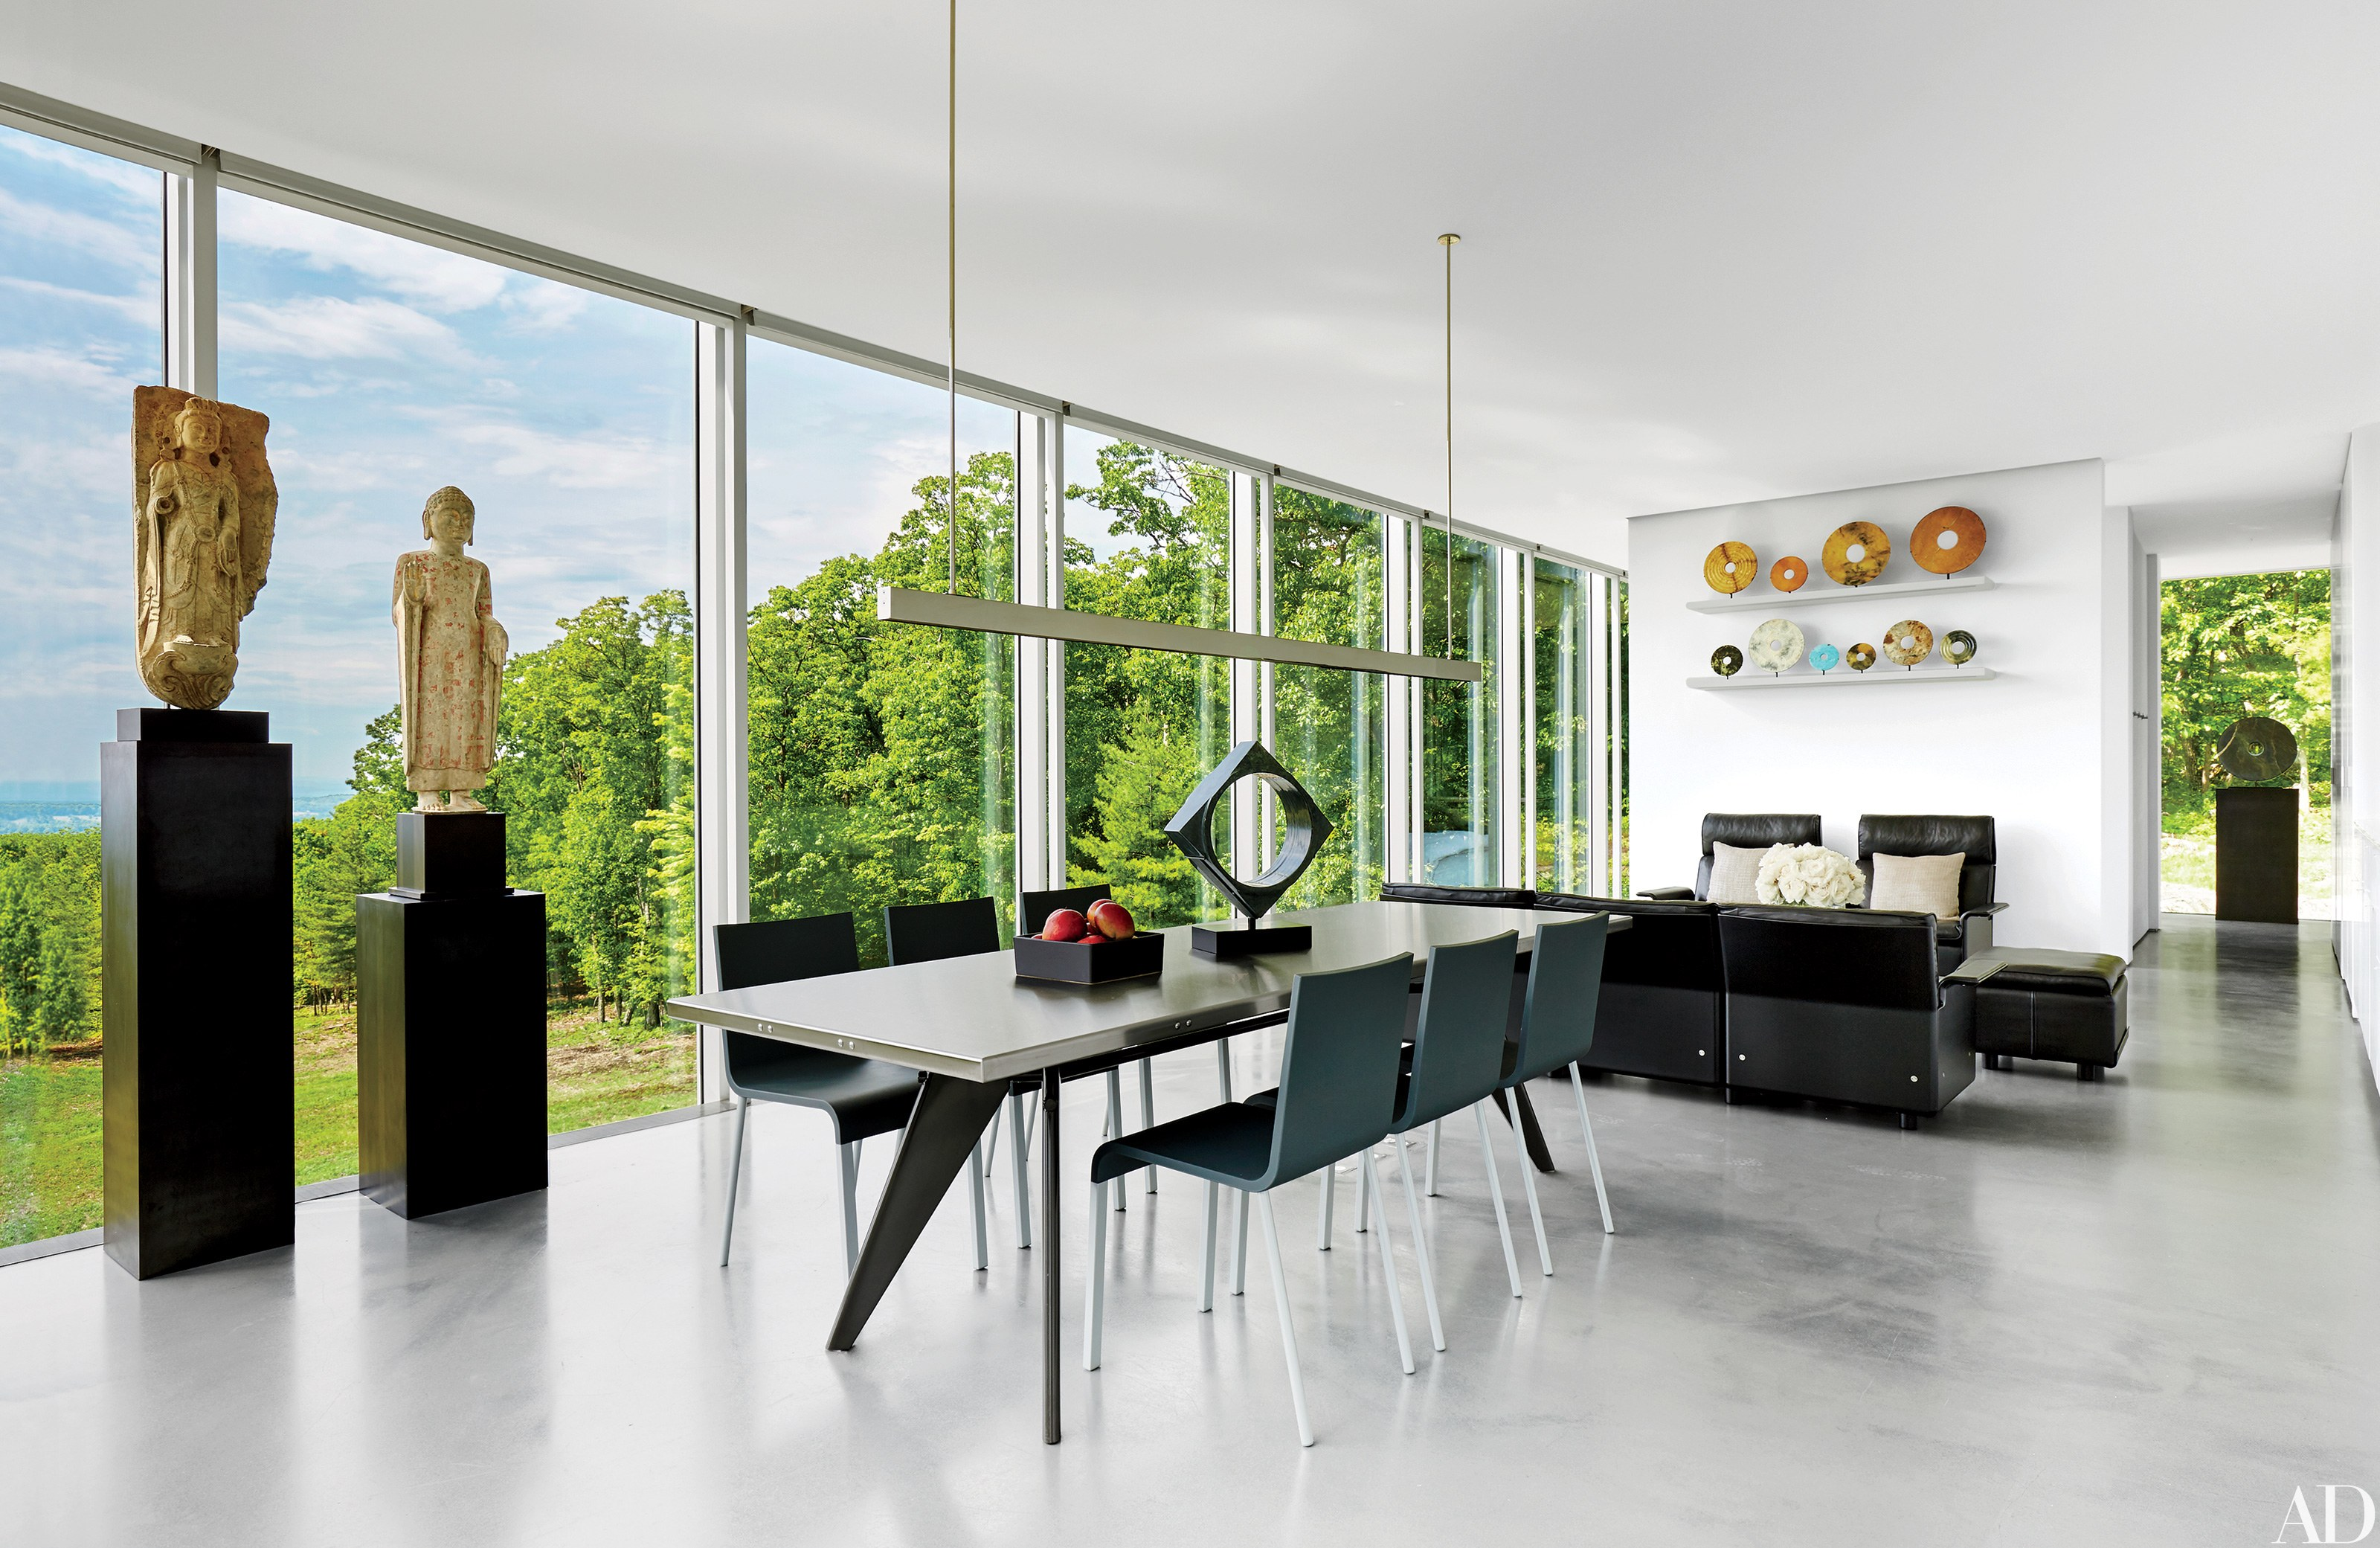 Best contemporary interior design: 13 striking and sleek rooms photos |  architectural digest fekwvdr